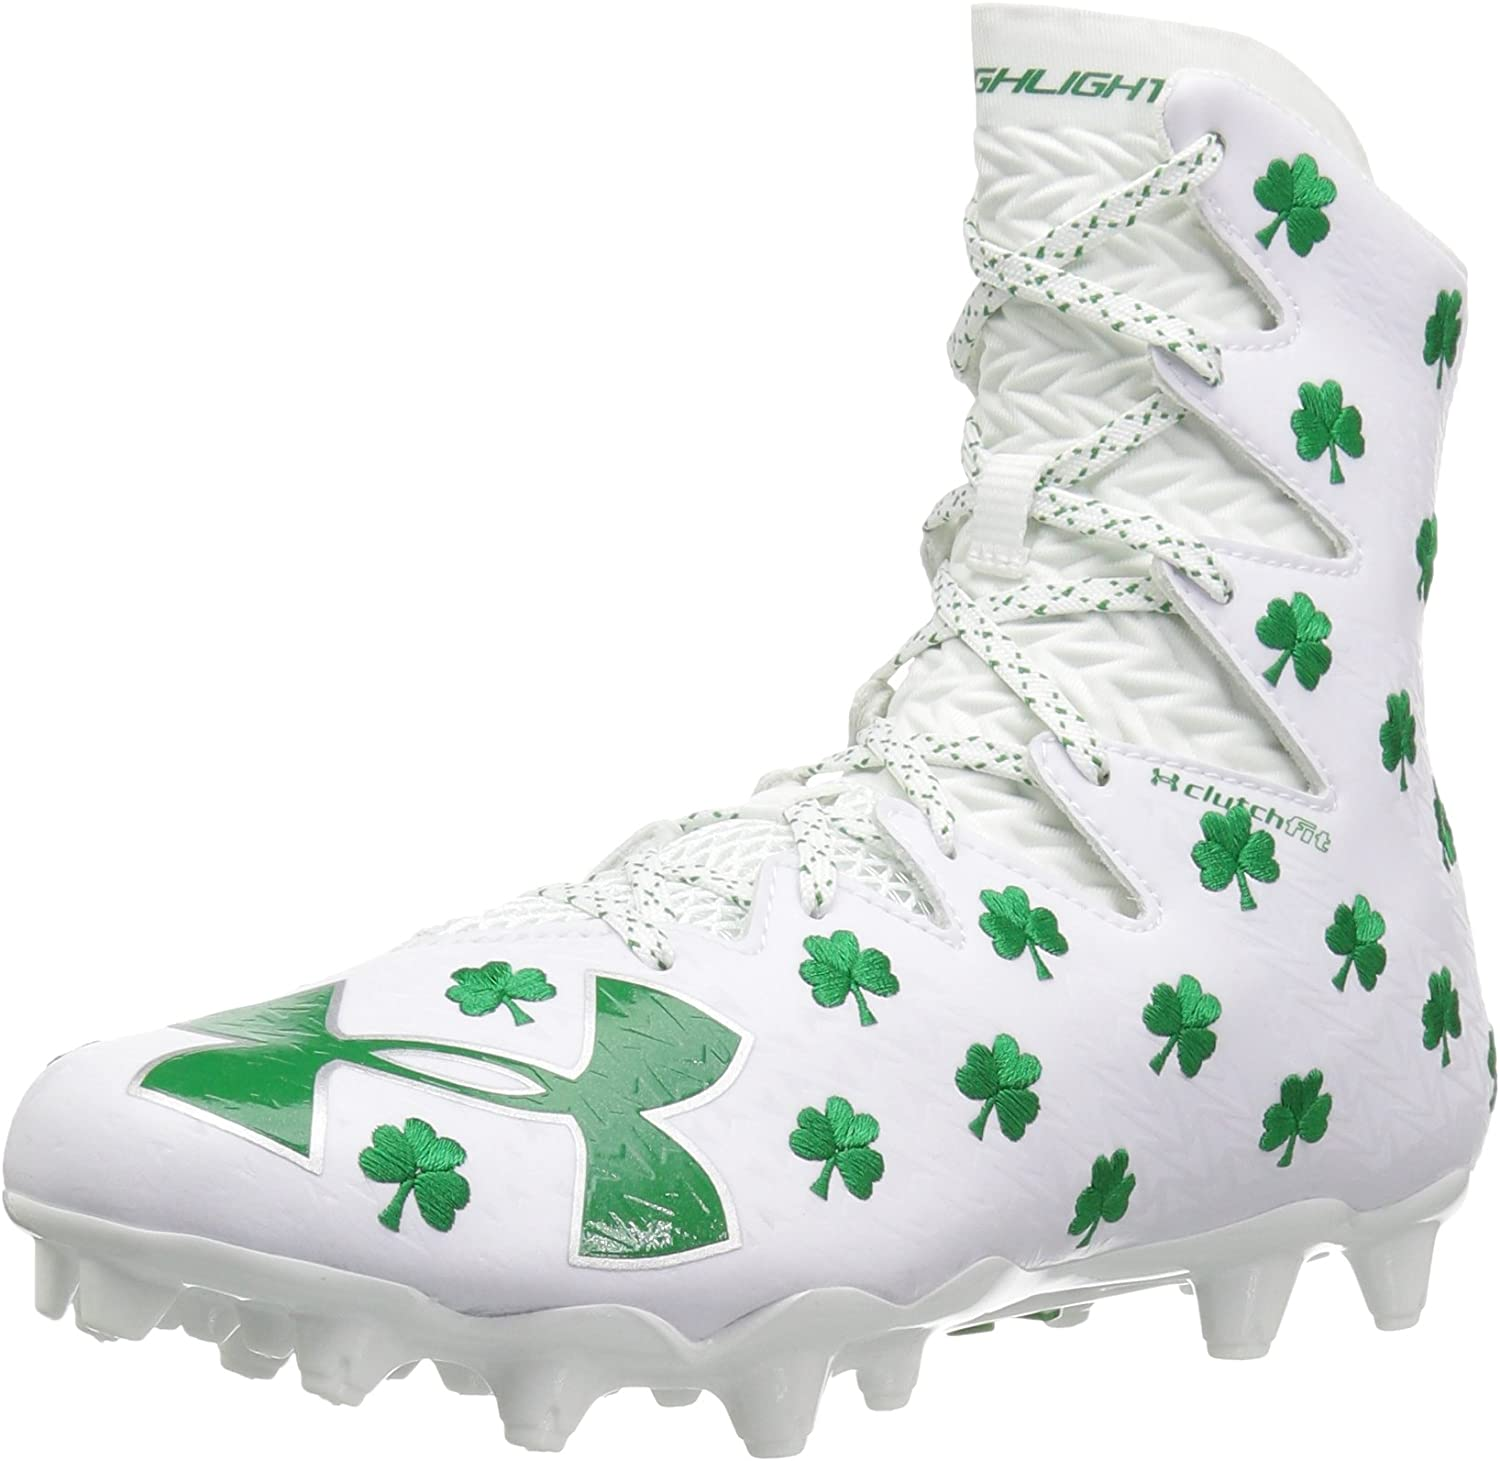 UA Under Armour 1297354 Highlight MC Lobster Lacrosse Football Cleats White Mens